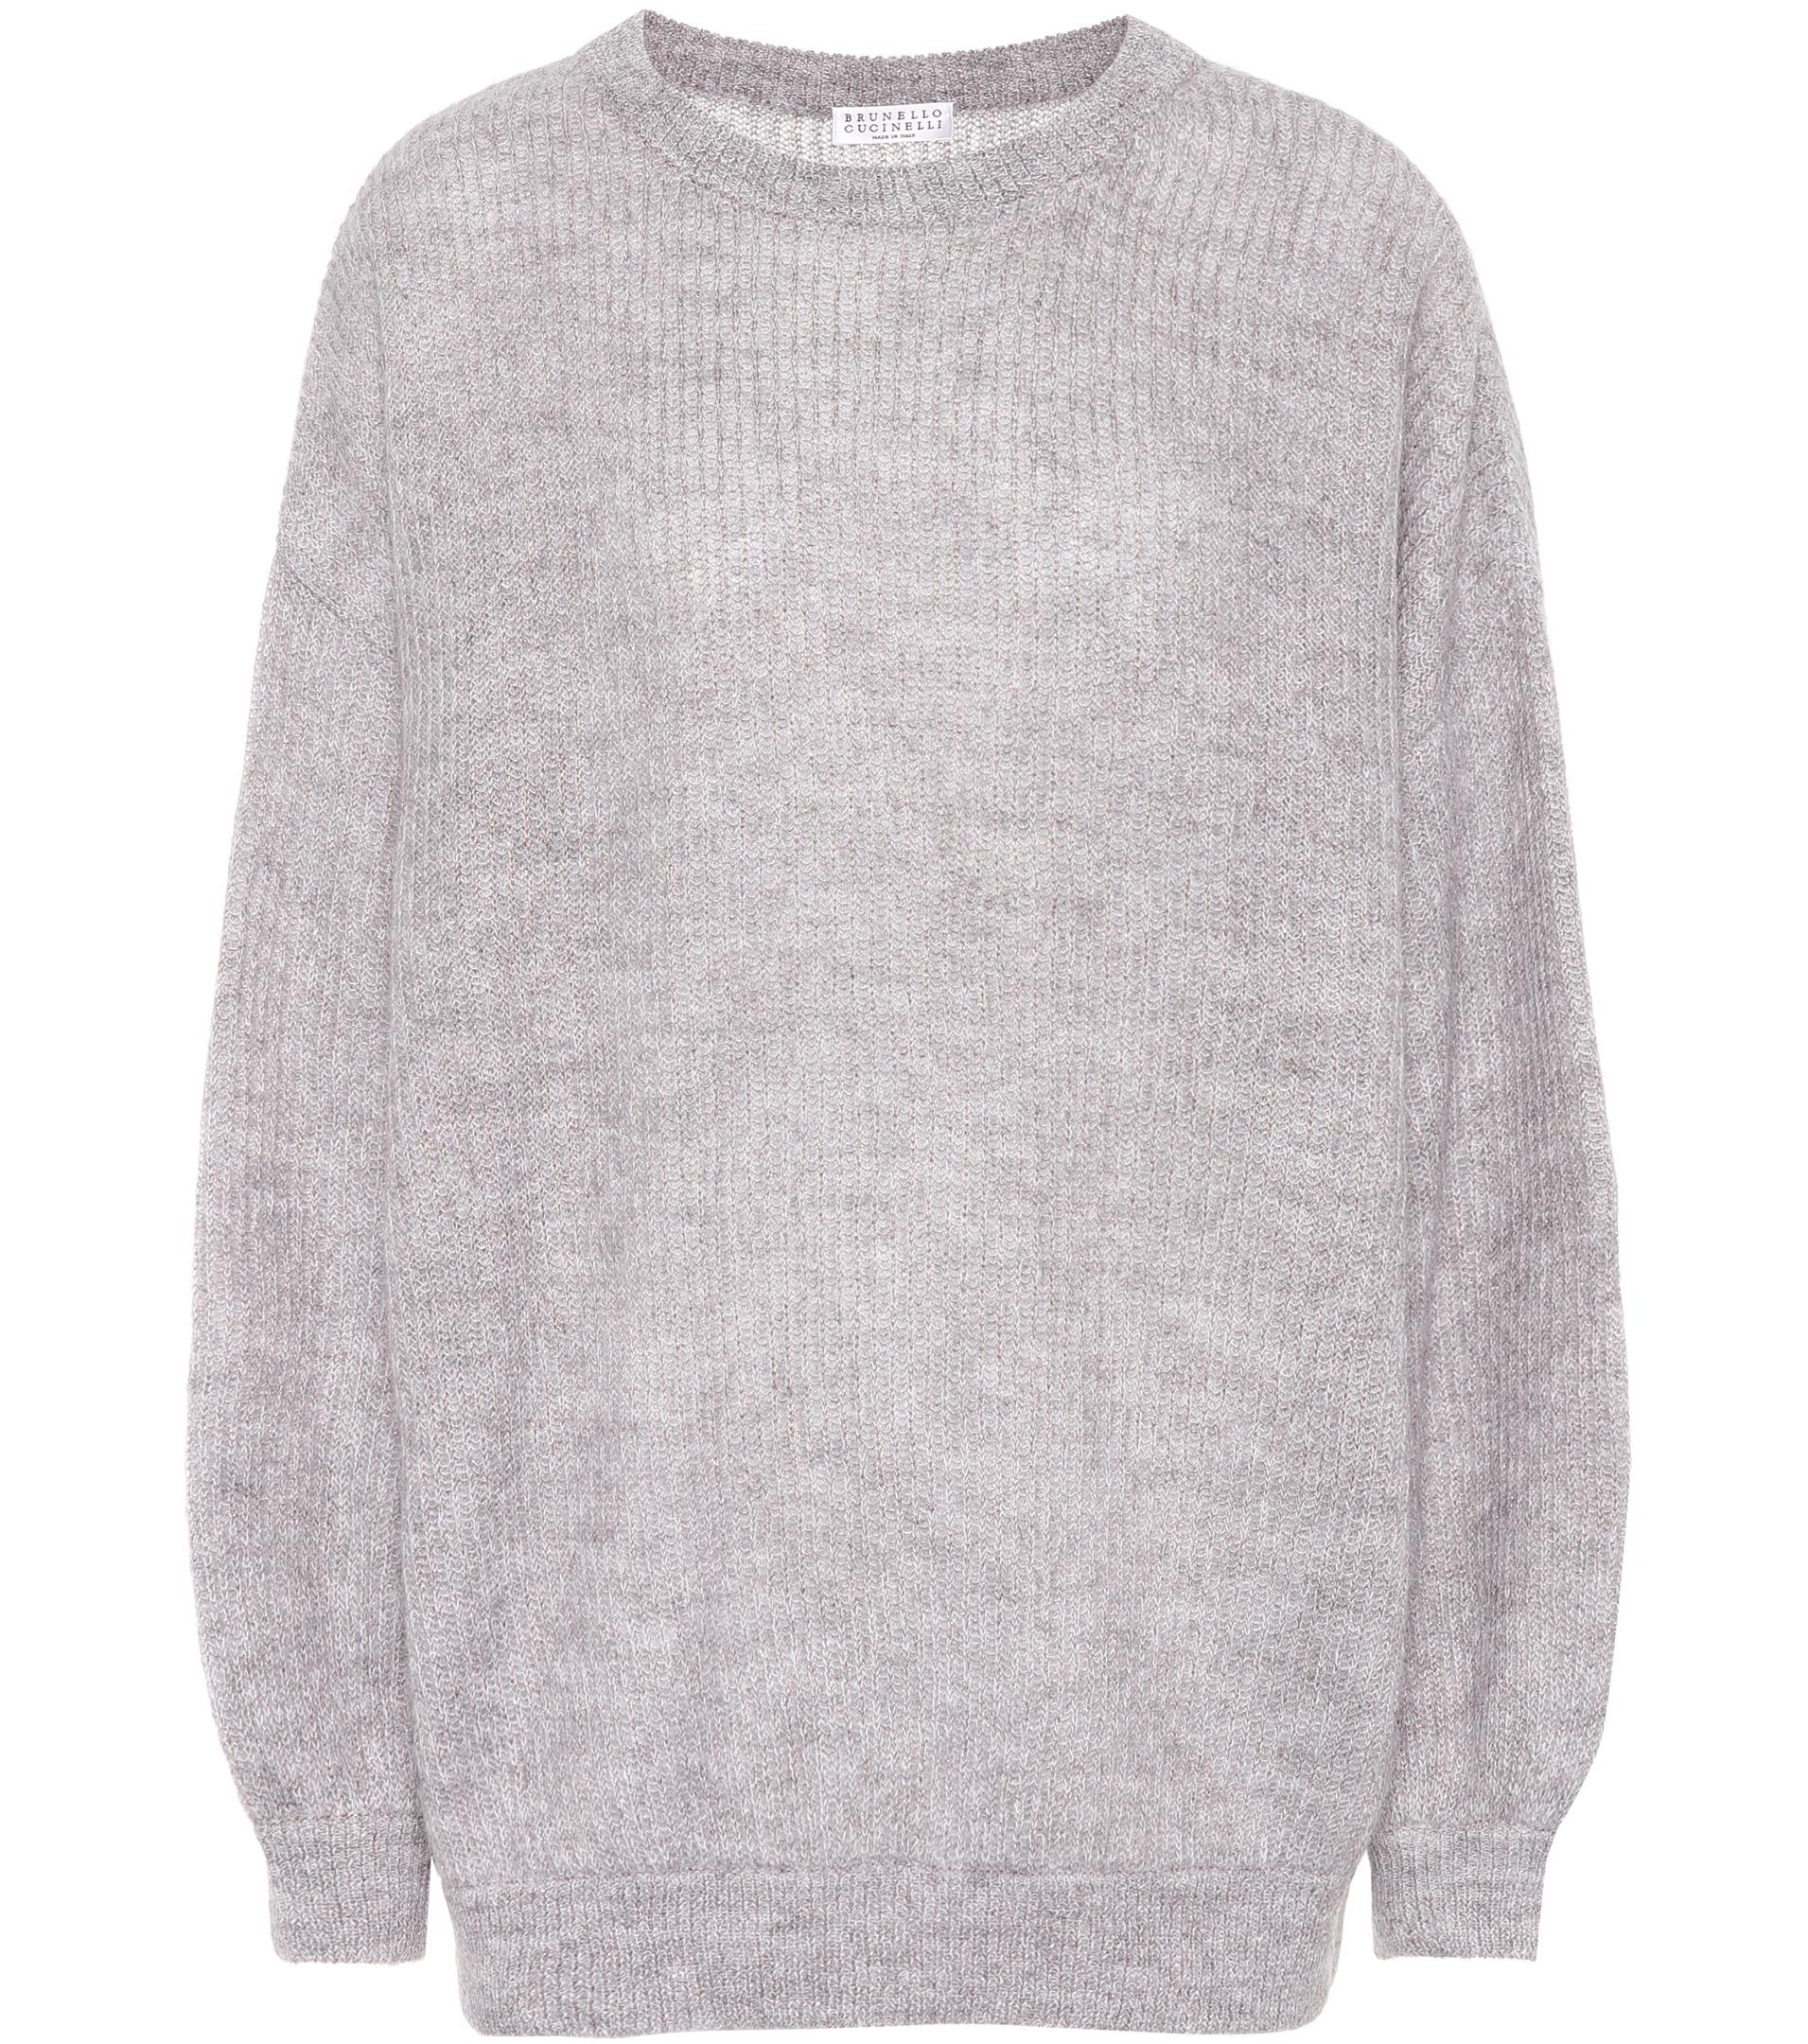 Mohair-blend metallic sweater Brunello Cucinelli 2018 Newest Sale Online Clearance Store Clearance With Mastercard Cheap Reliable New KoEOVJu9